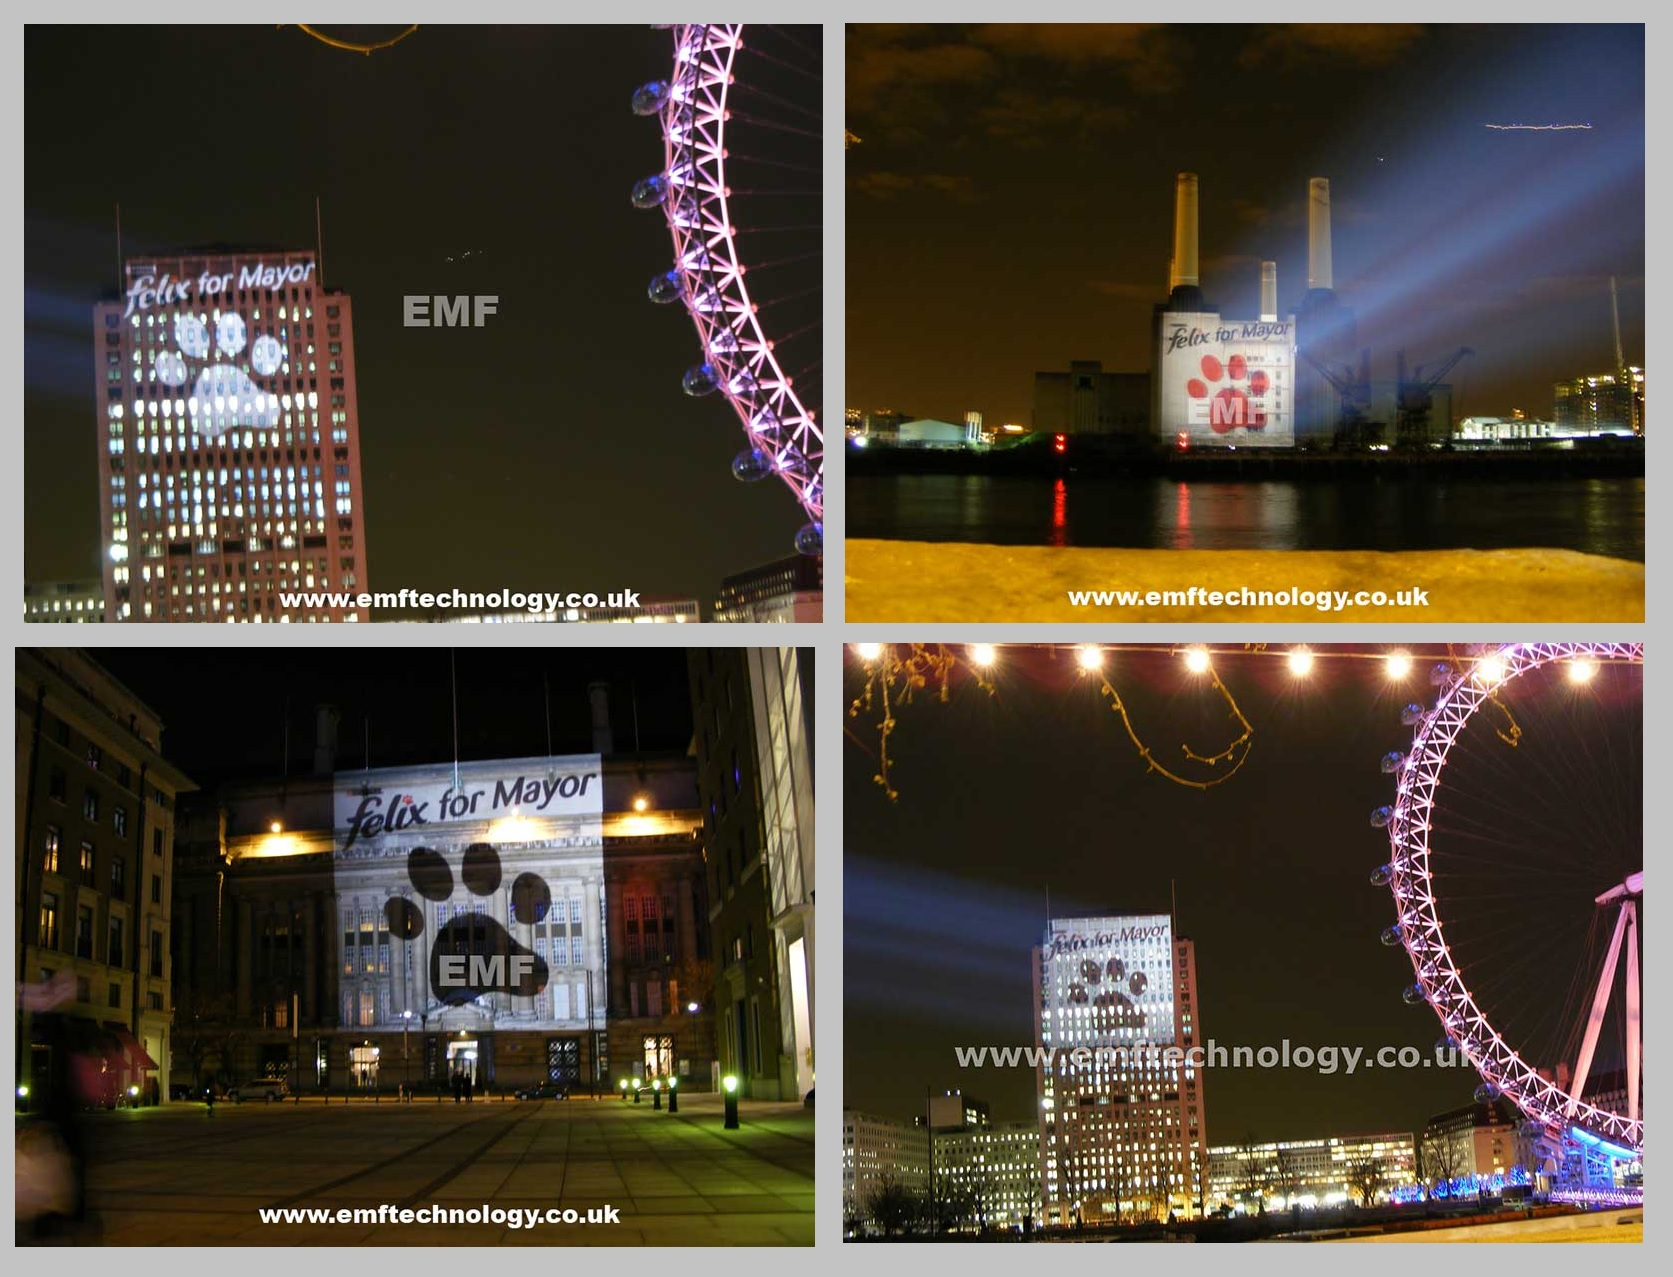 Outdoor Building Projection Advertising Campaign London